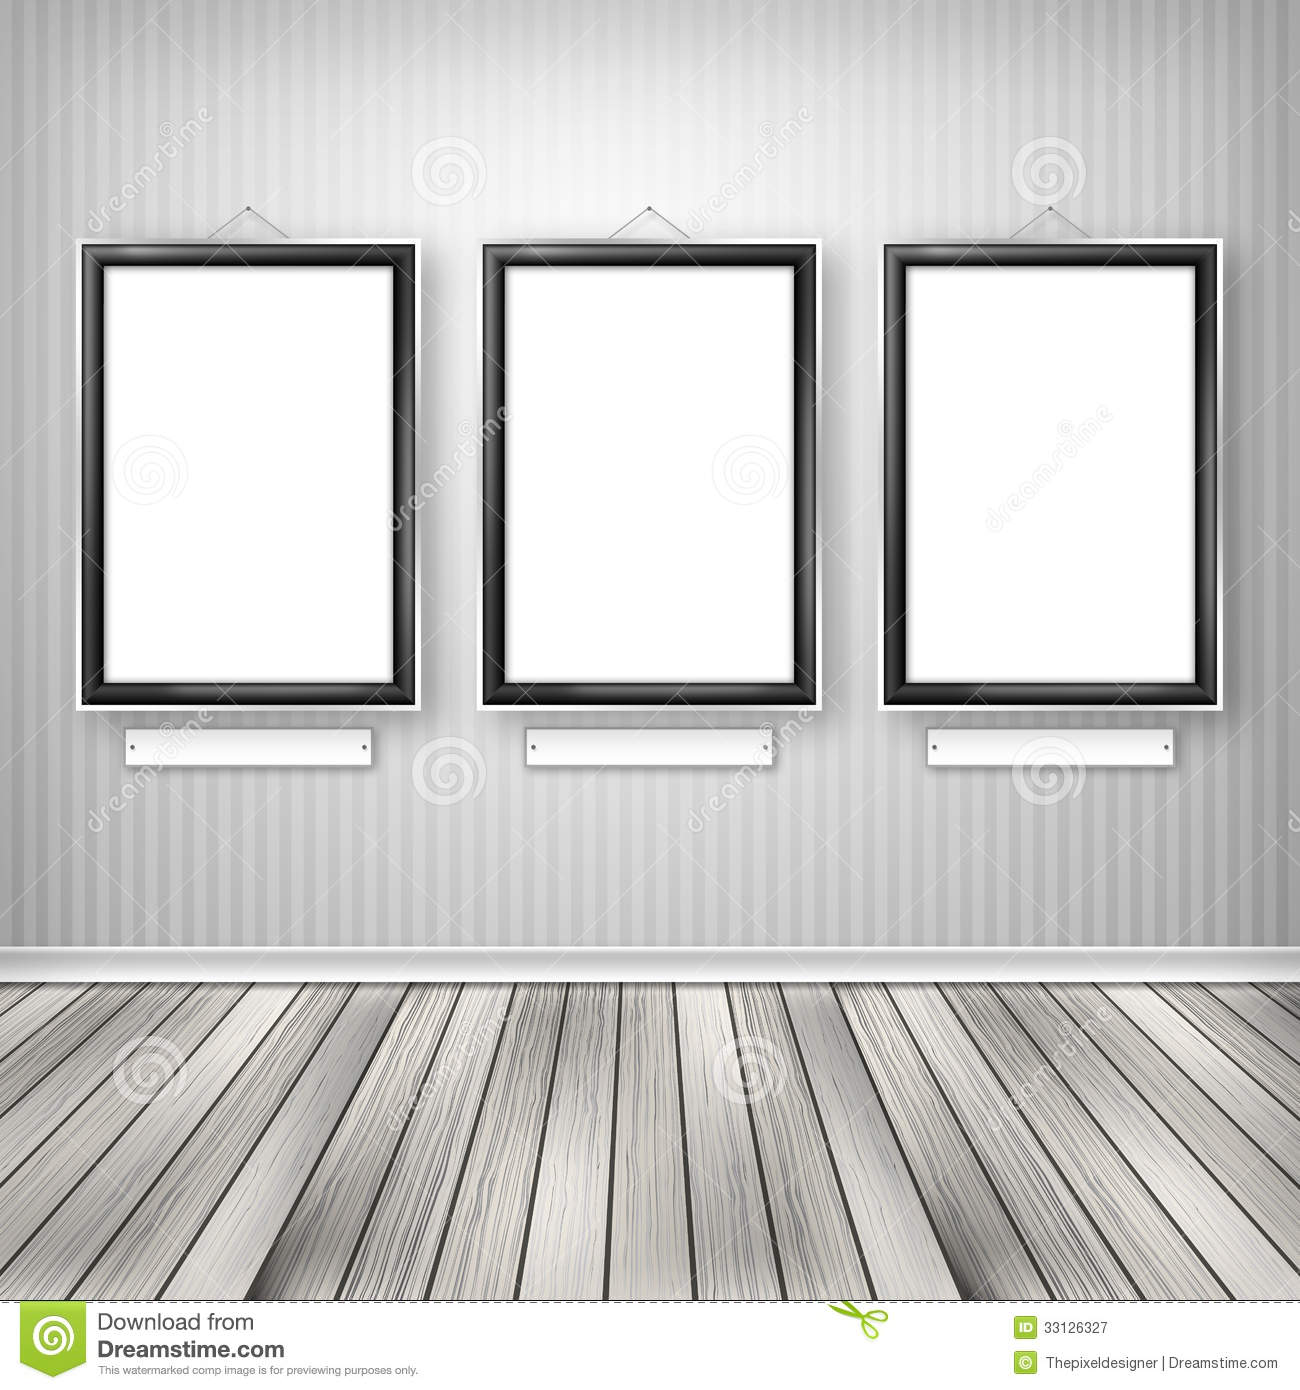 three empty frames on pic source